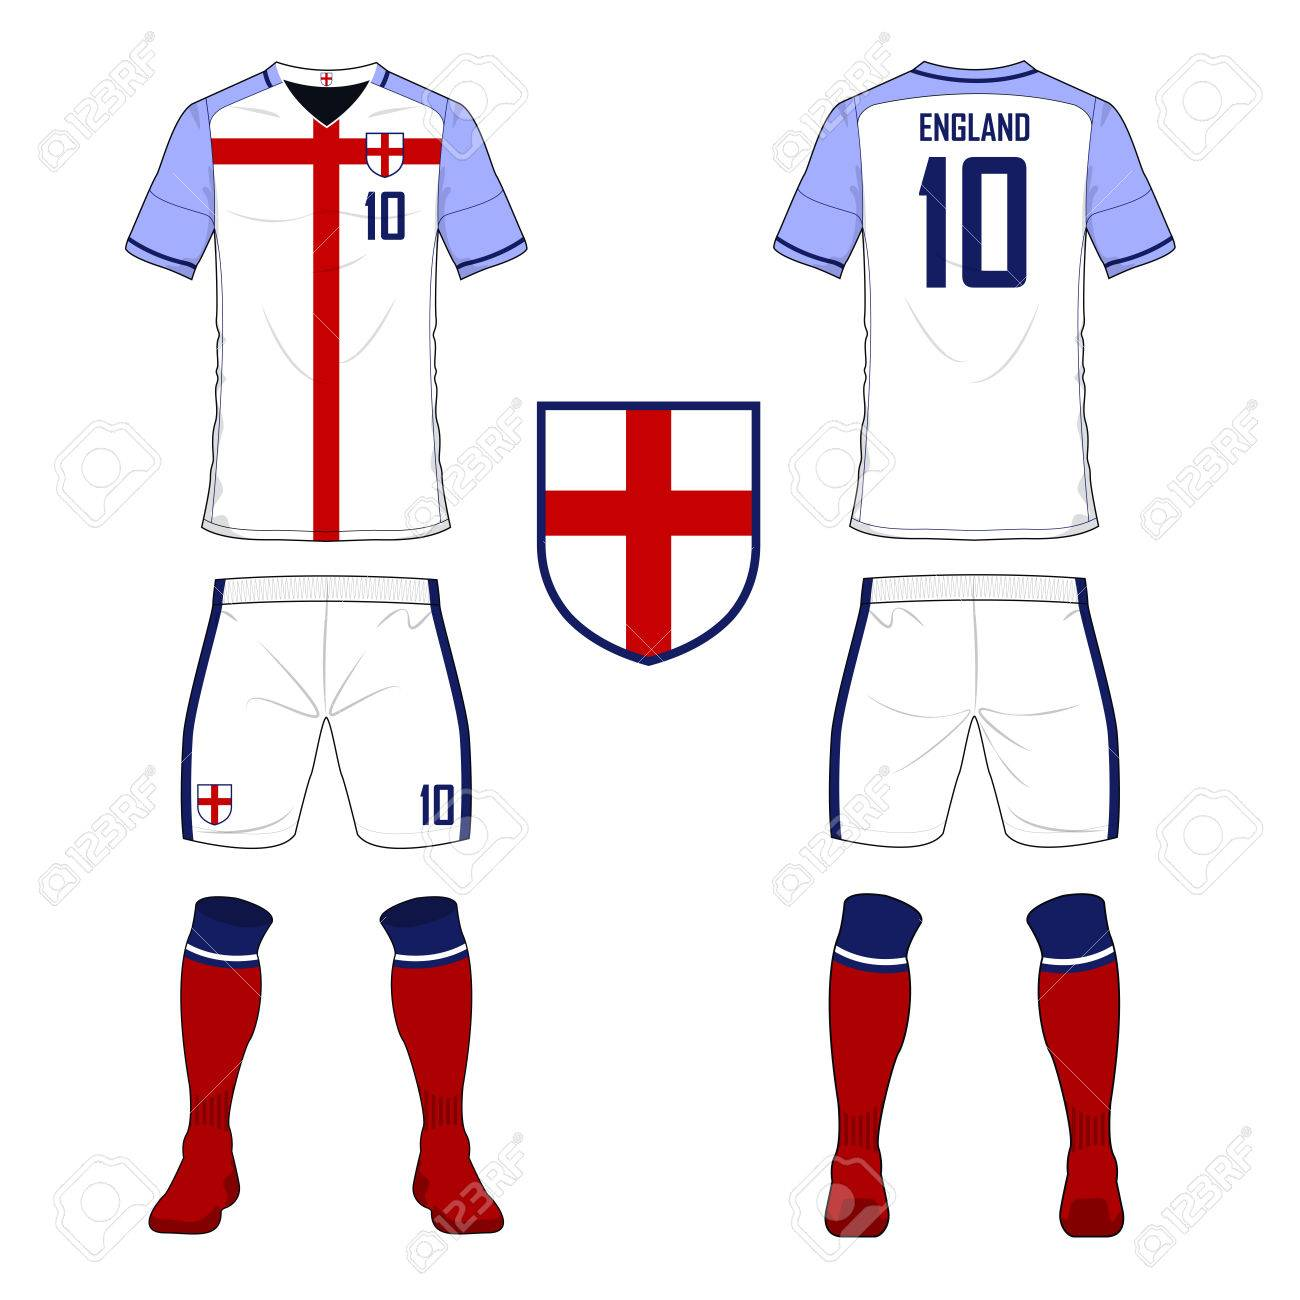 7319aefd Set of soccer jersey or football kit template for England national football  team. Front and